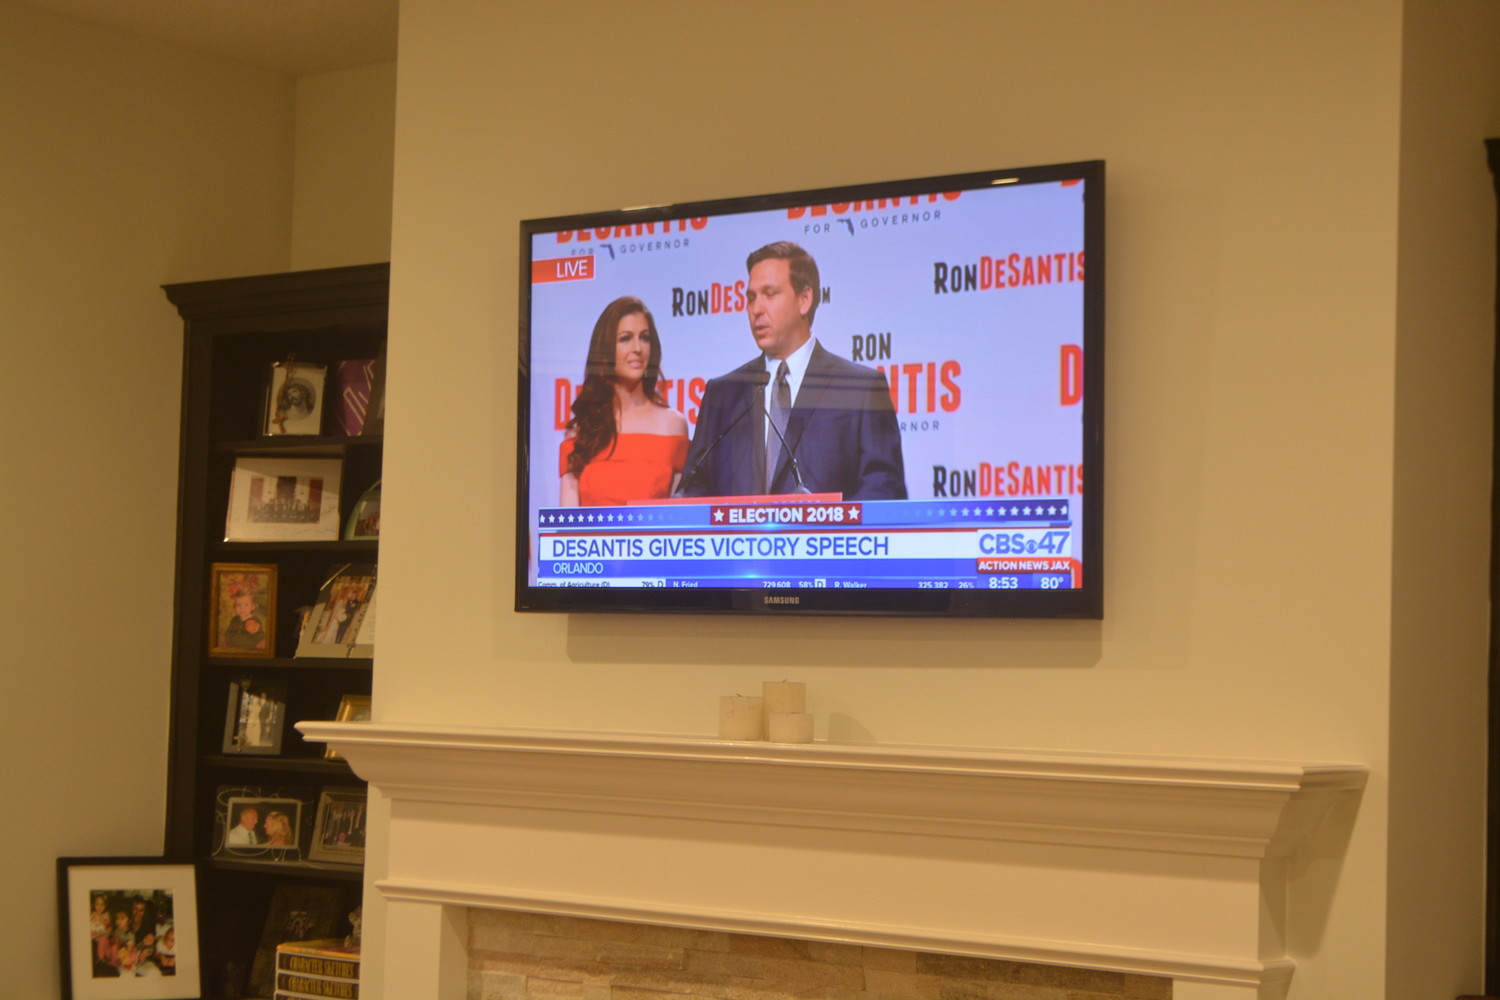 A television at Jeremiah Blocker's home shows Ron DeSantis' victory speech.